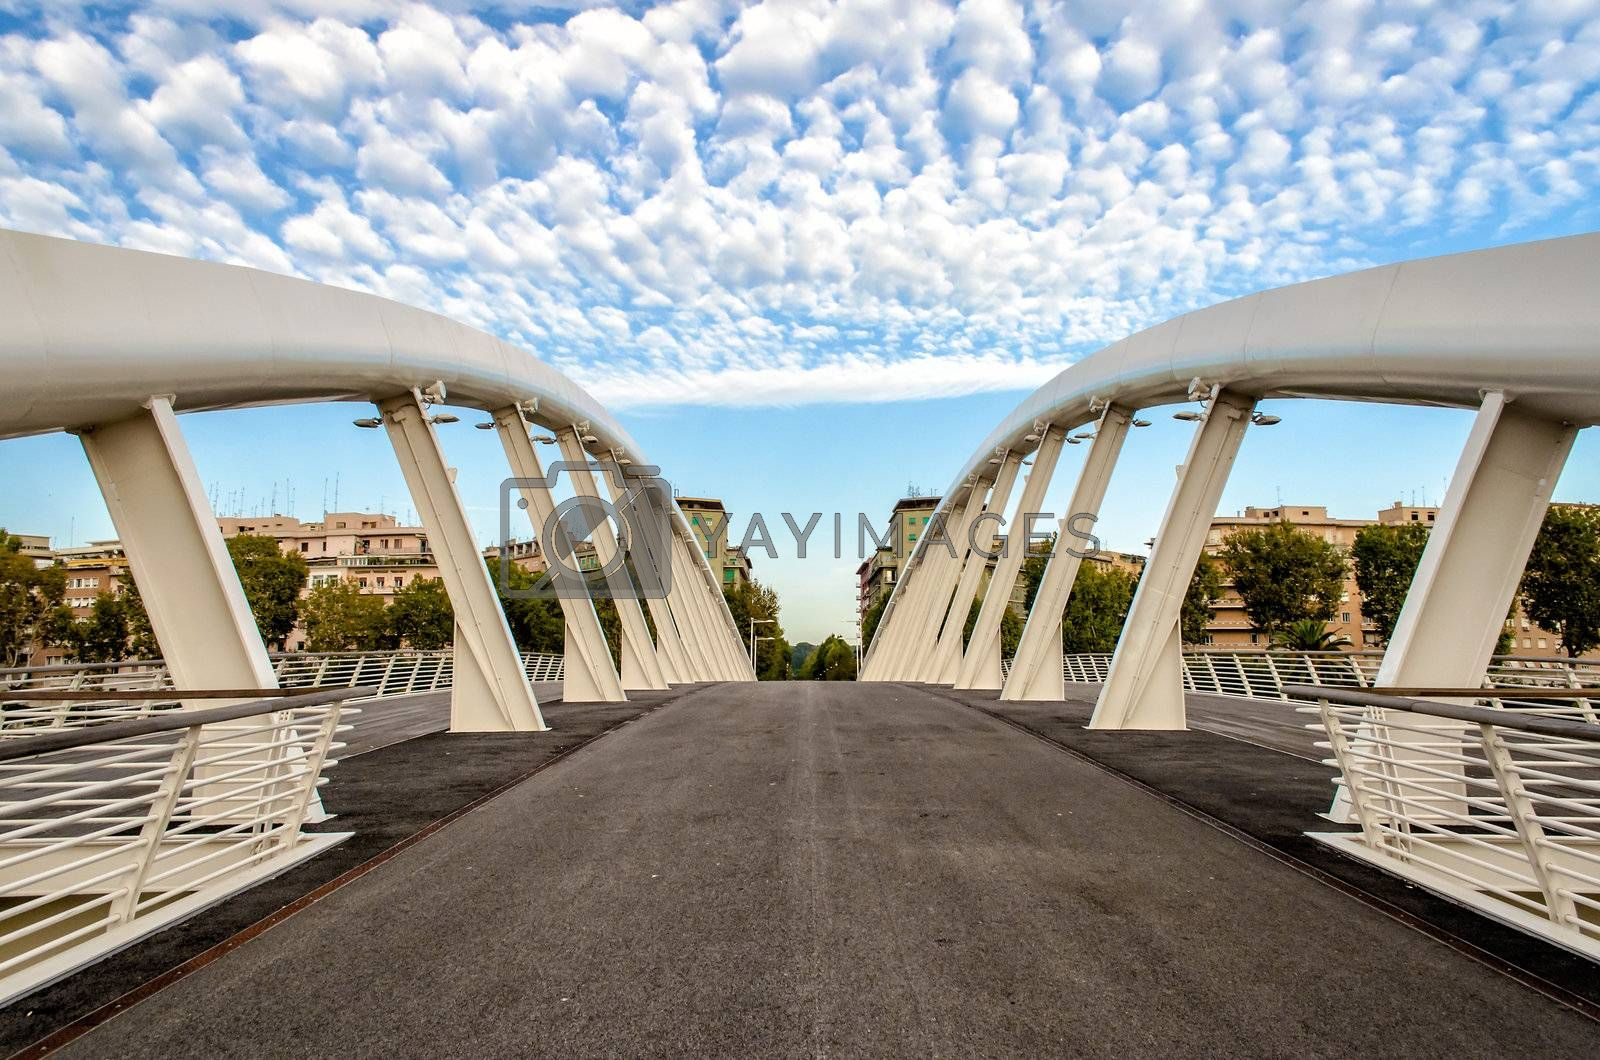 Ponte della Musica, a modern bridge in the heart of Rome, Italy